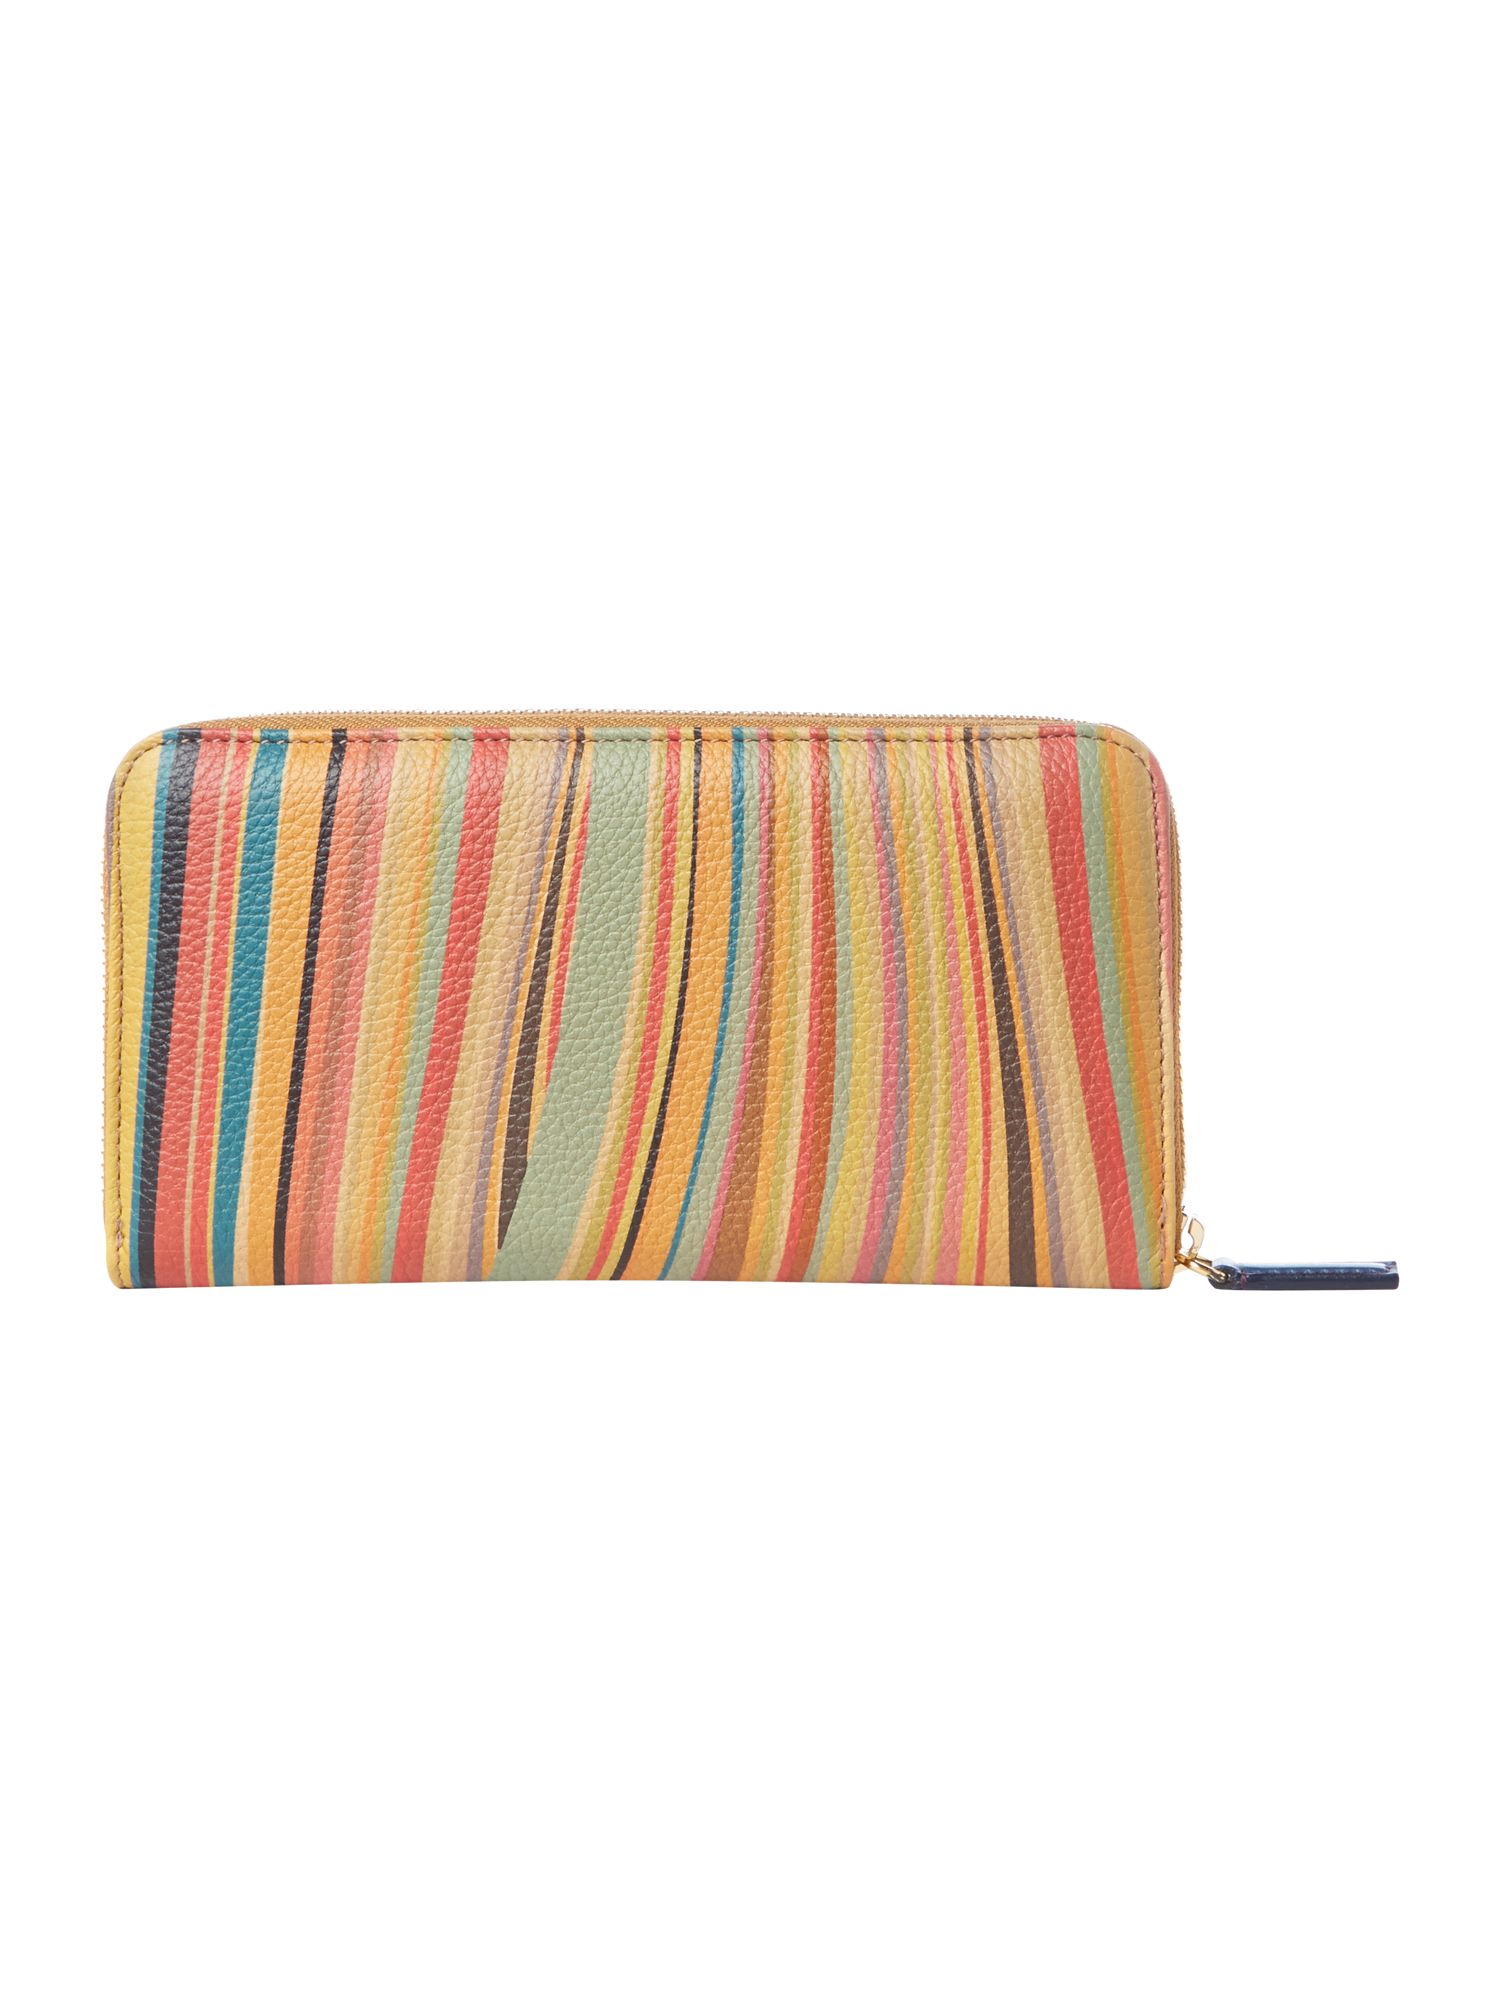 Swirl multi-coloured large zip around purse